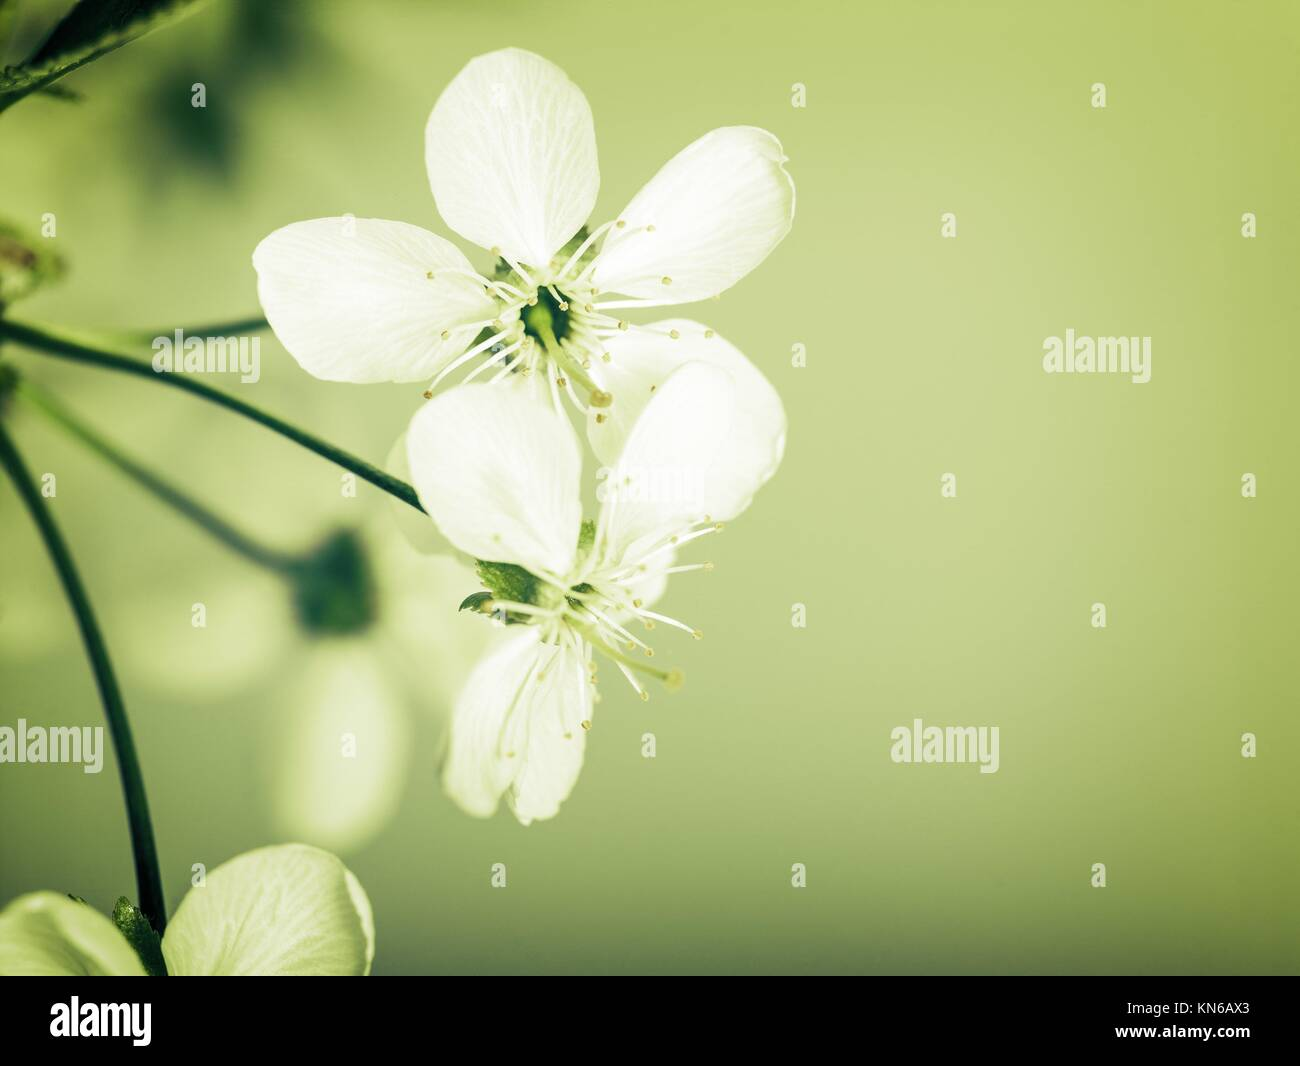 Cherry Flowers Abstract Spring Backgrounds